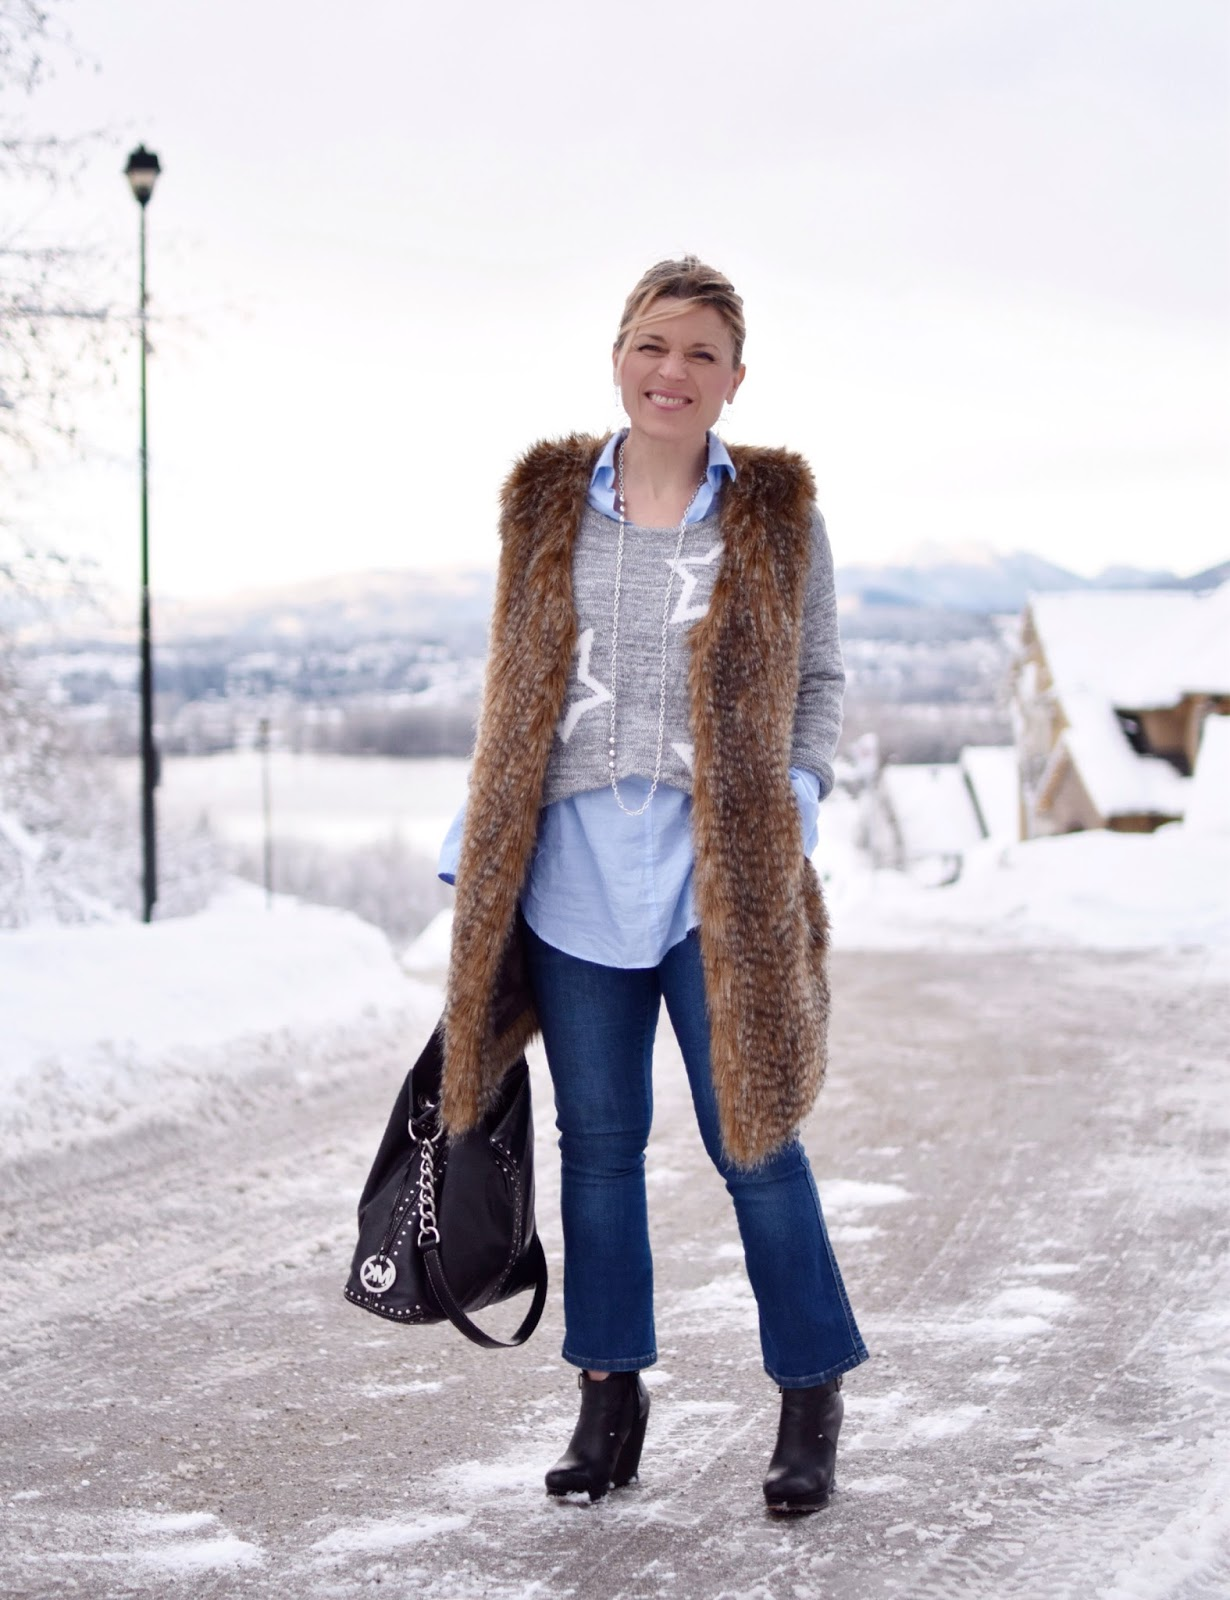 Monika Faulkner outfit inspiration - styling cropped jeans with an oversize-cuffed shirt, star-patterned sweater, and long faux-fur vest